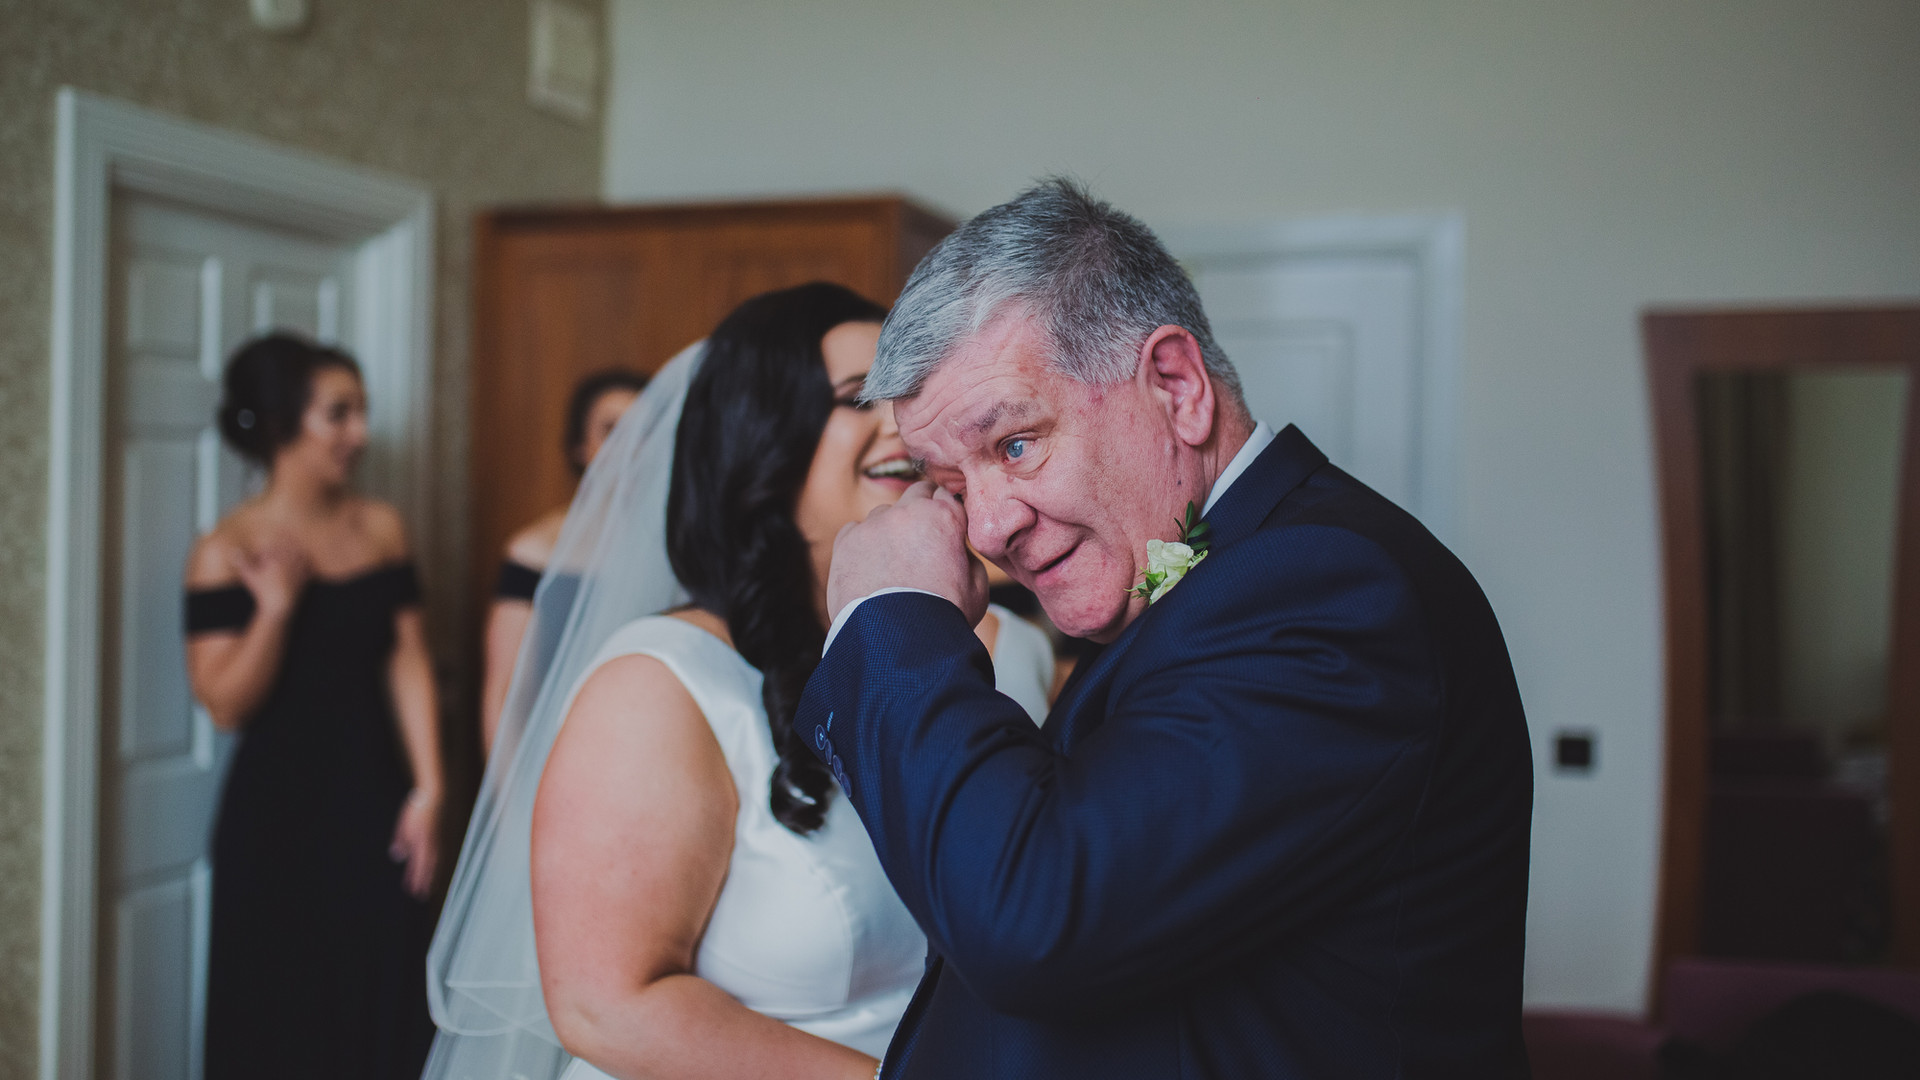 Emotional Father of The Bride | Slieve Donard Wedding | Living Witness Weddings